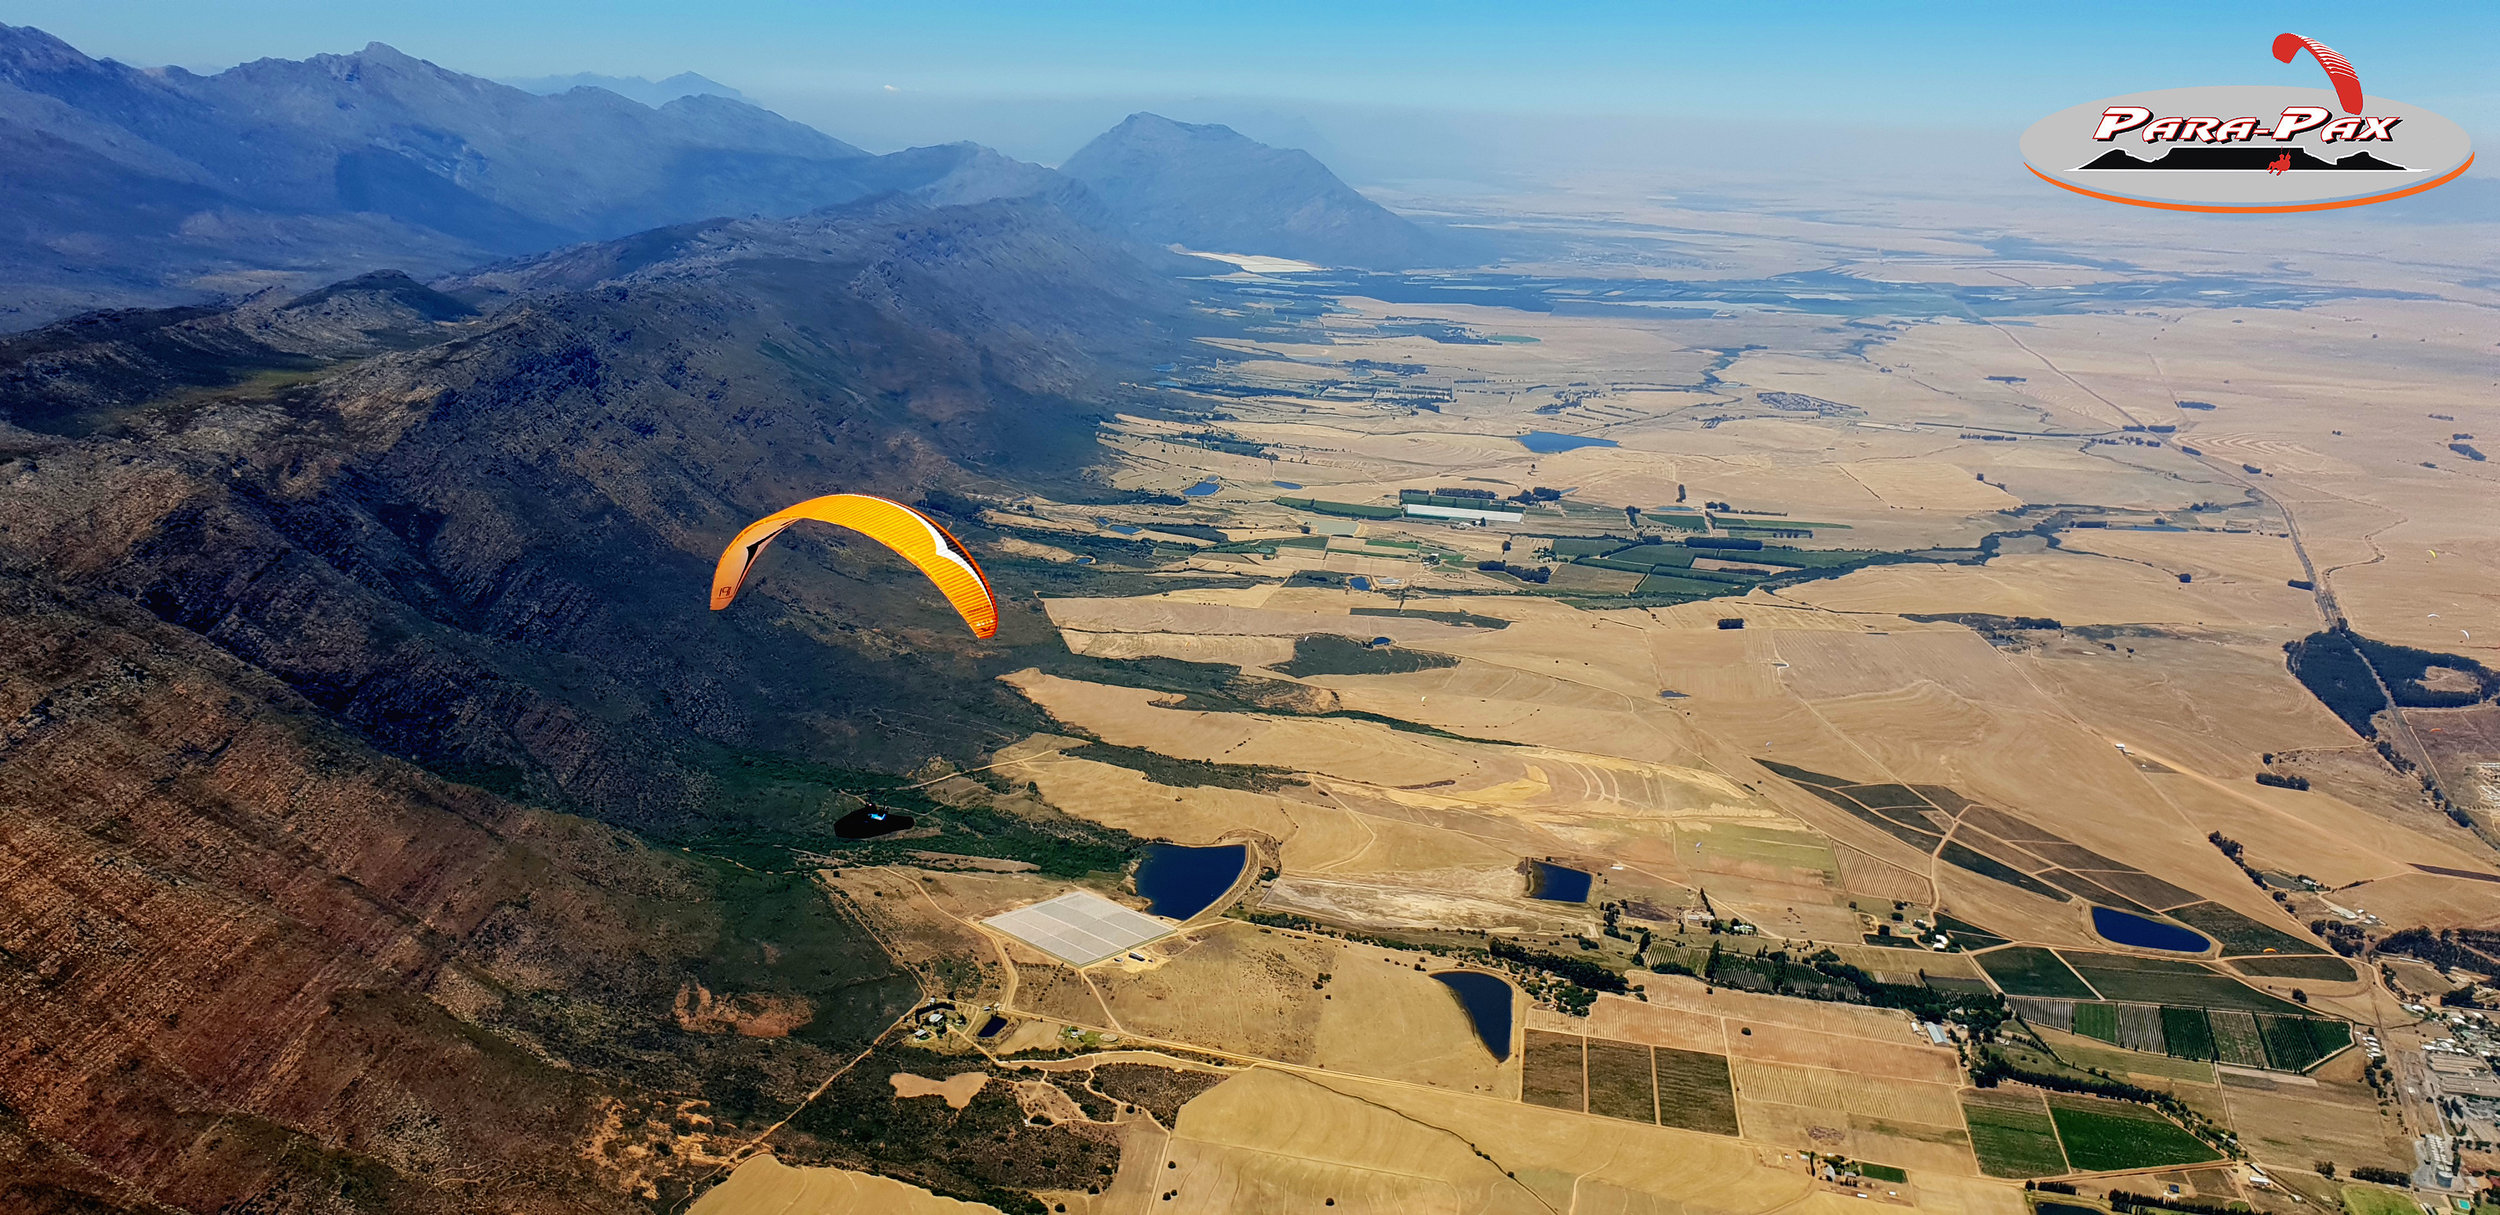 14 DAY TOUR - CAPE TOWN AND GARDEN ROUTE   Join us on a beautiful scenic tour. Cape Town, Hermanus, Wilderness. Suitable for pilots of all skill levels. Relaxed coastal soaring. Improve your ground handling techniques. Top landing and easy wagga flying.  09 November - 23 November 2019 - 14 day tour (Available) 26 January - 6 February 2020 -  Fully Booked  16 January - 01 February 2020 -  Fully Booked  08 February - 22 February 2020 - 14 day tour (Available)